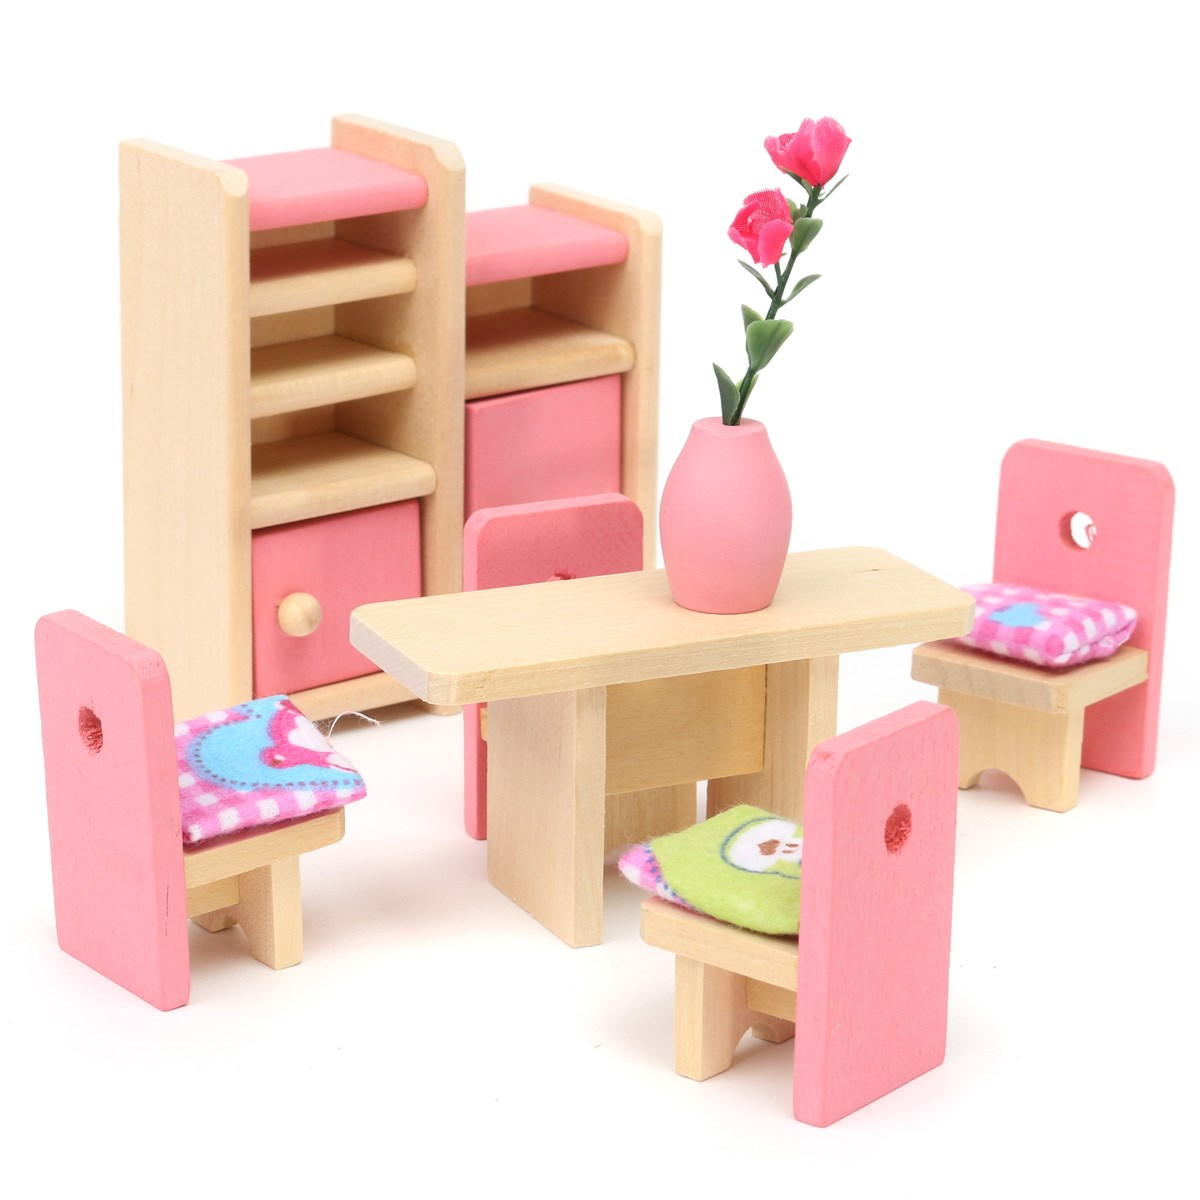 Wooden Delicate Dollhouse Furniture Toys Miniature For Kids Children Pretend Play 6 Room Set 4